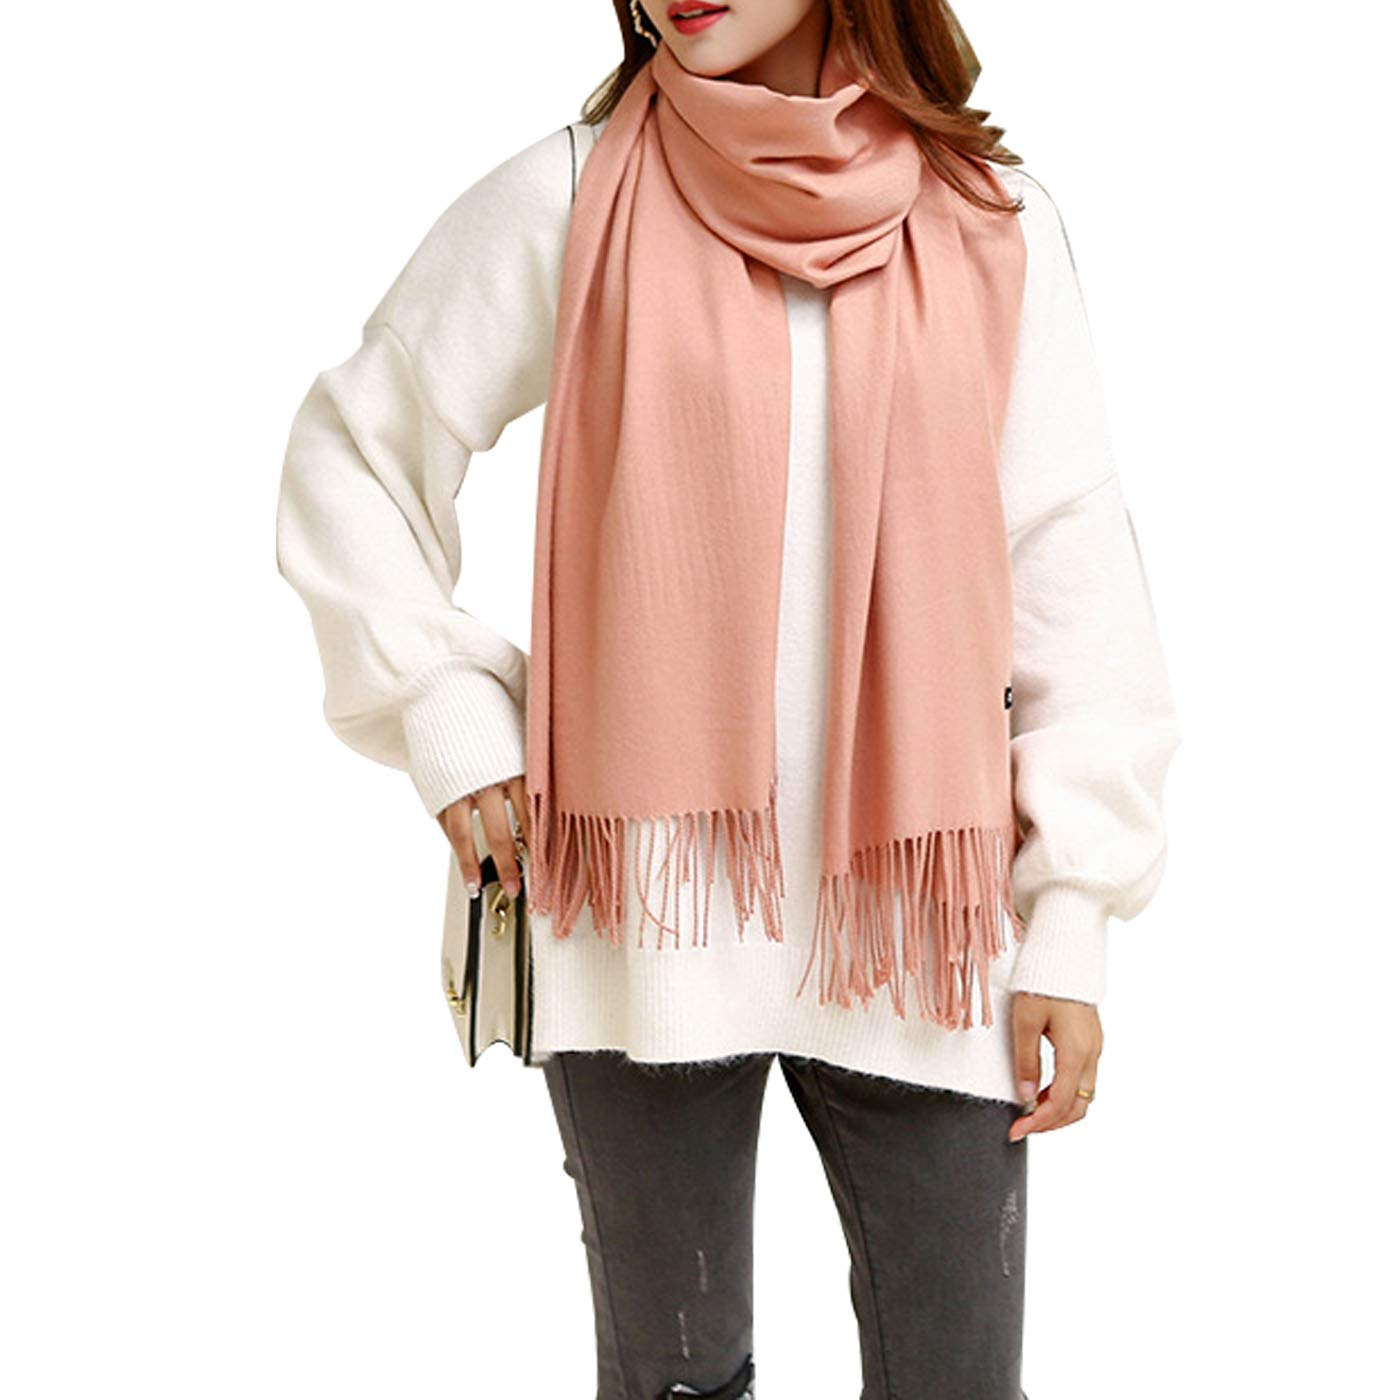 orangepink Womens Soft Cashmere Wool Scarf, Extra Large Thick Soft Winter Pashmina Shawl Wraps Scarves